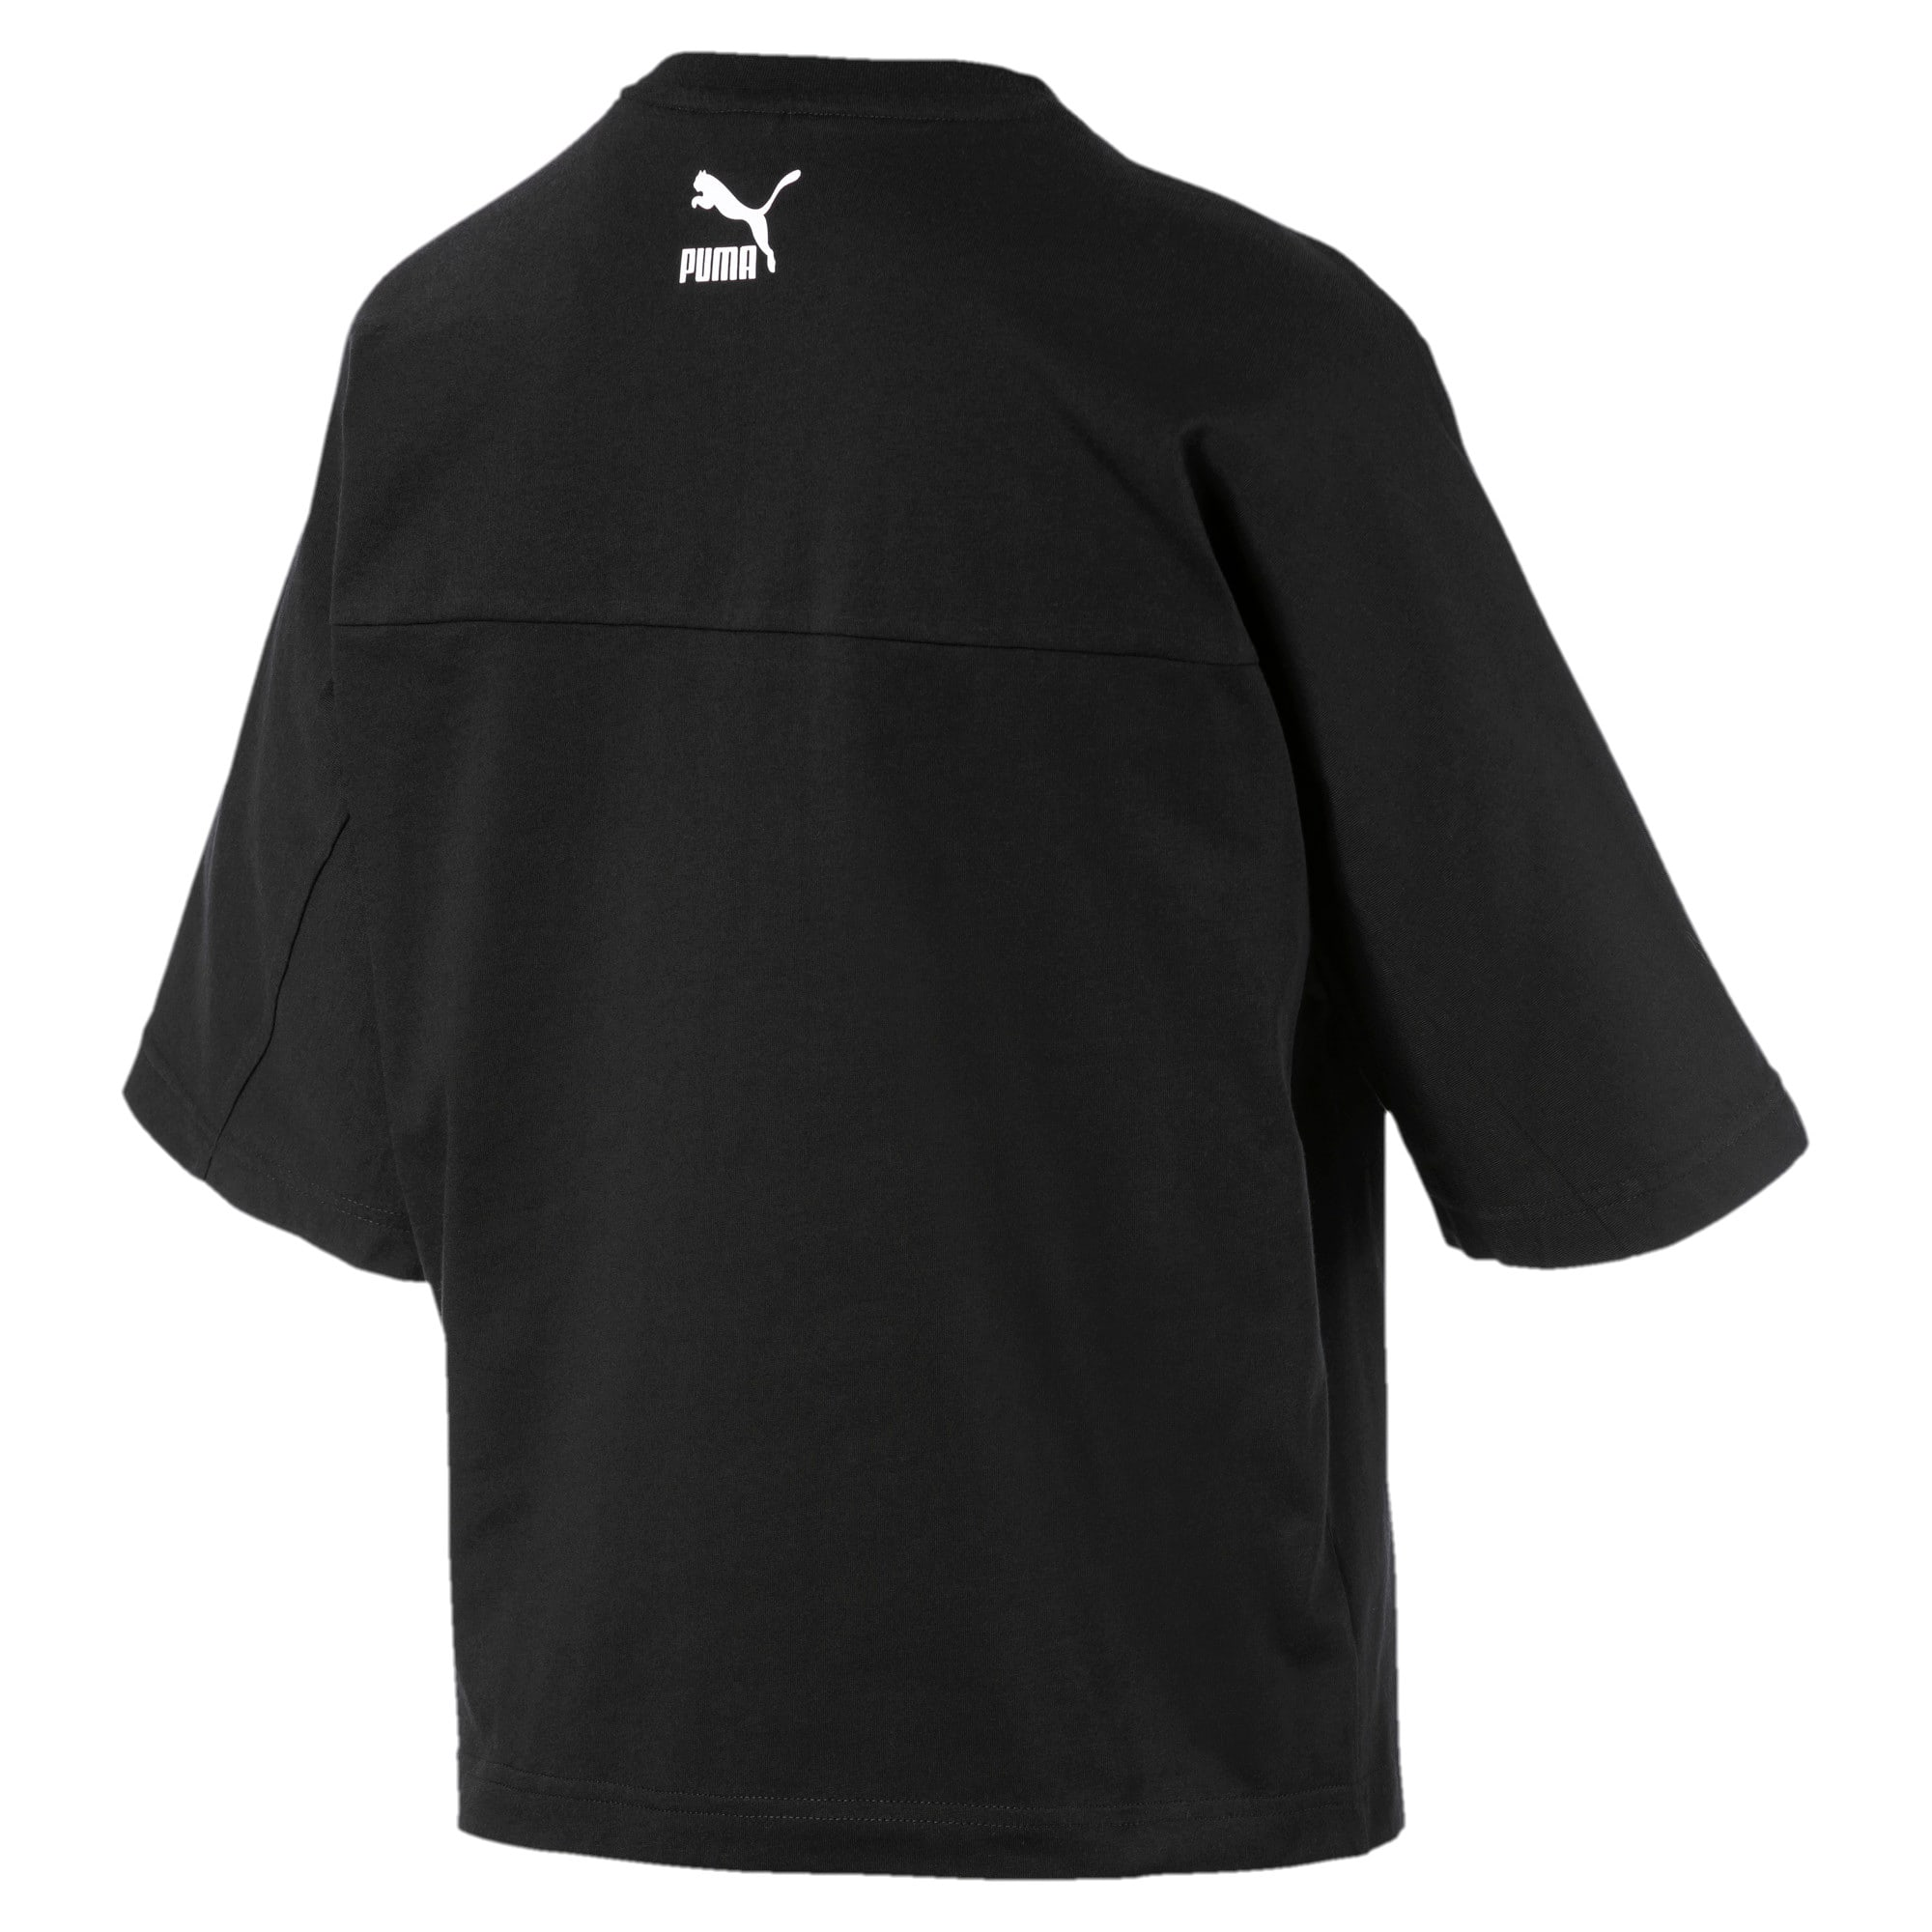 Thumbnail 5 of luXTG Women's Tee, Puma Black, medium